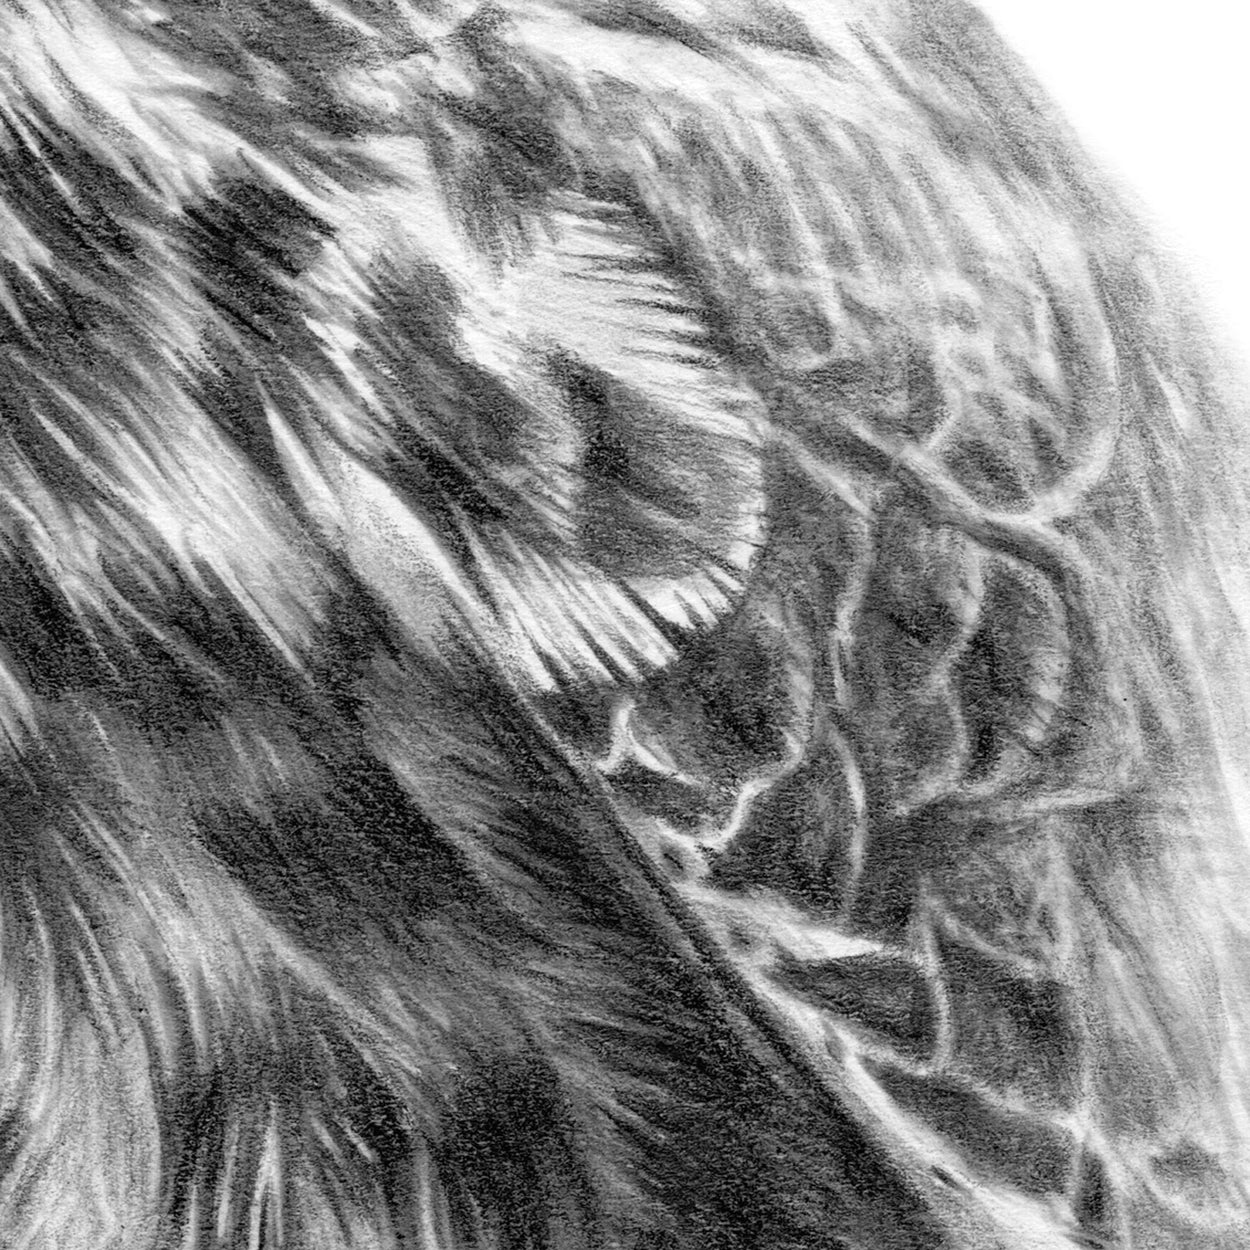 Hobby Feathers Close-up Drawing - The Thriving Wild